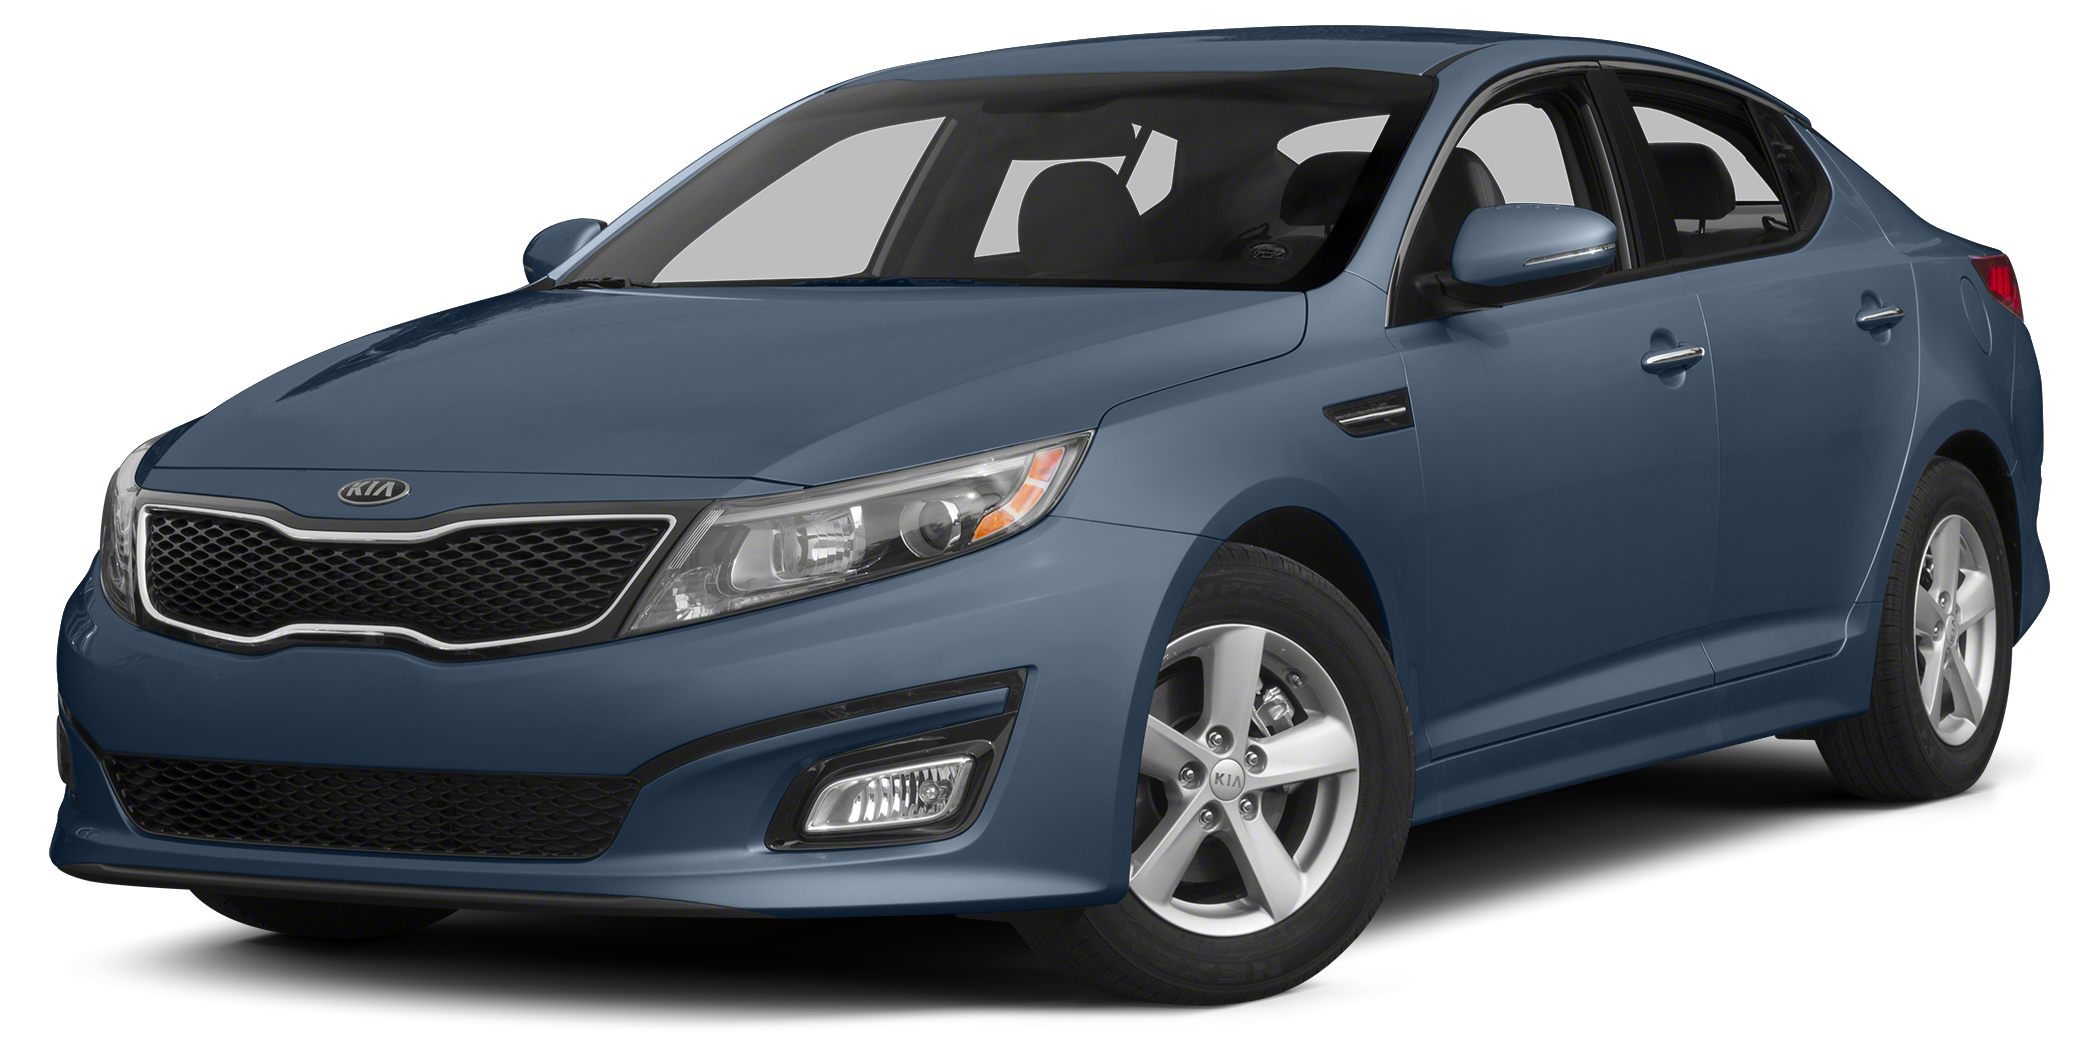 2015 Kia Optima LX With world-class engineering outstanding performance and advanced safety syste